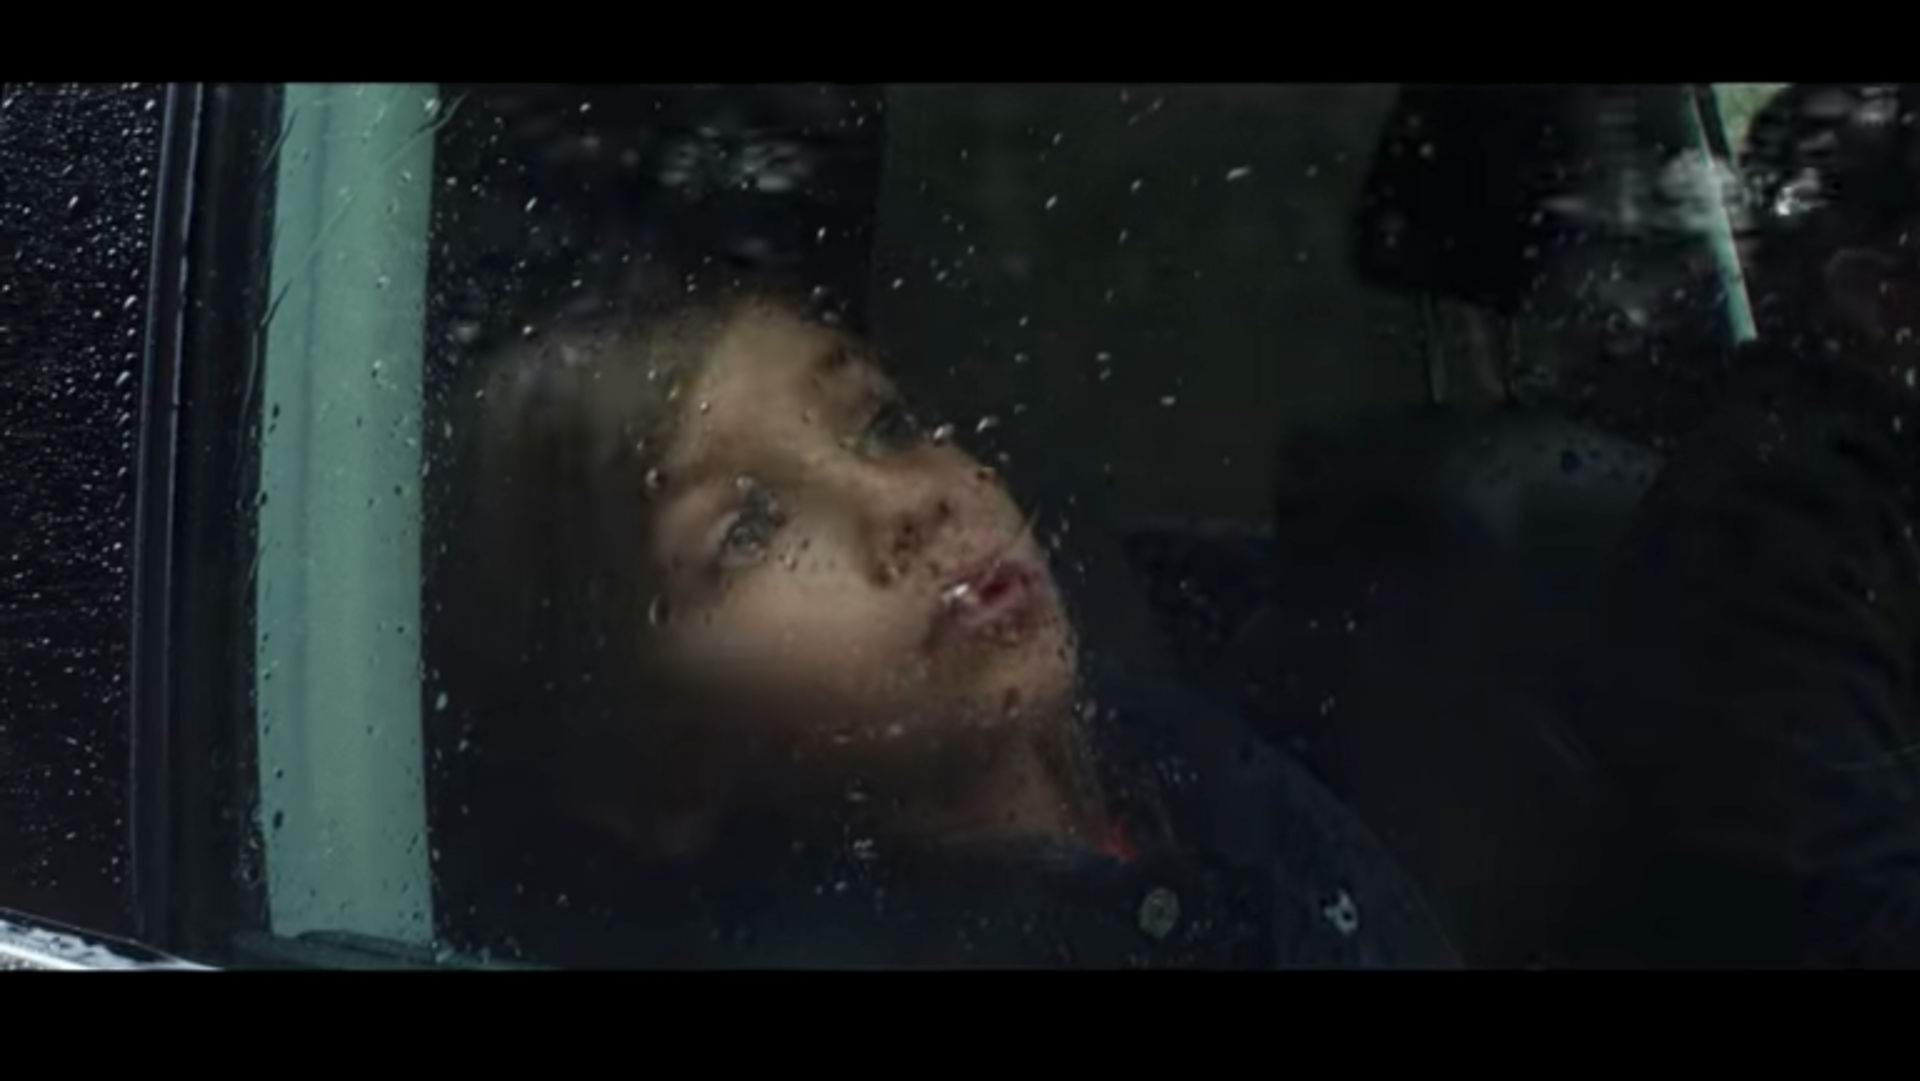 A girl looking out a rain covered window